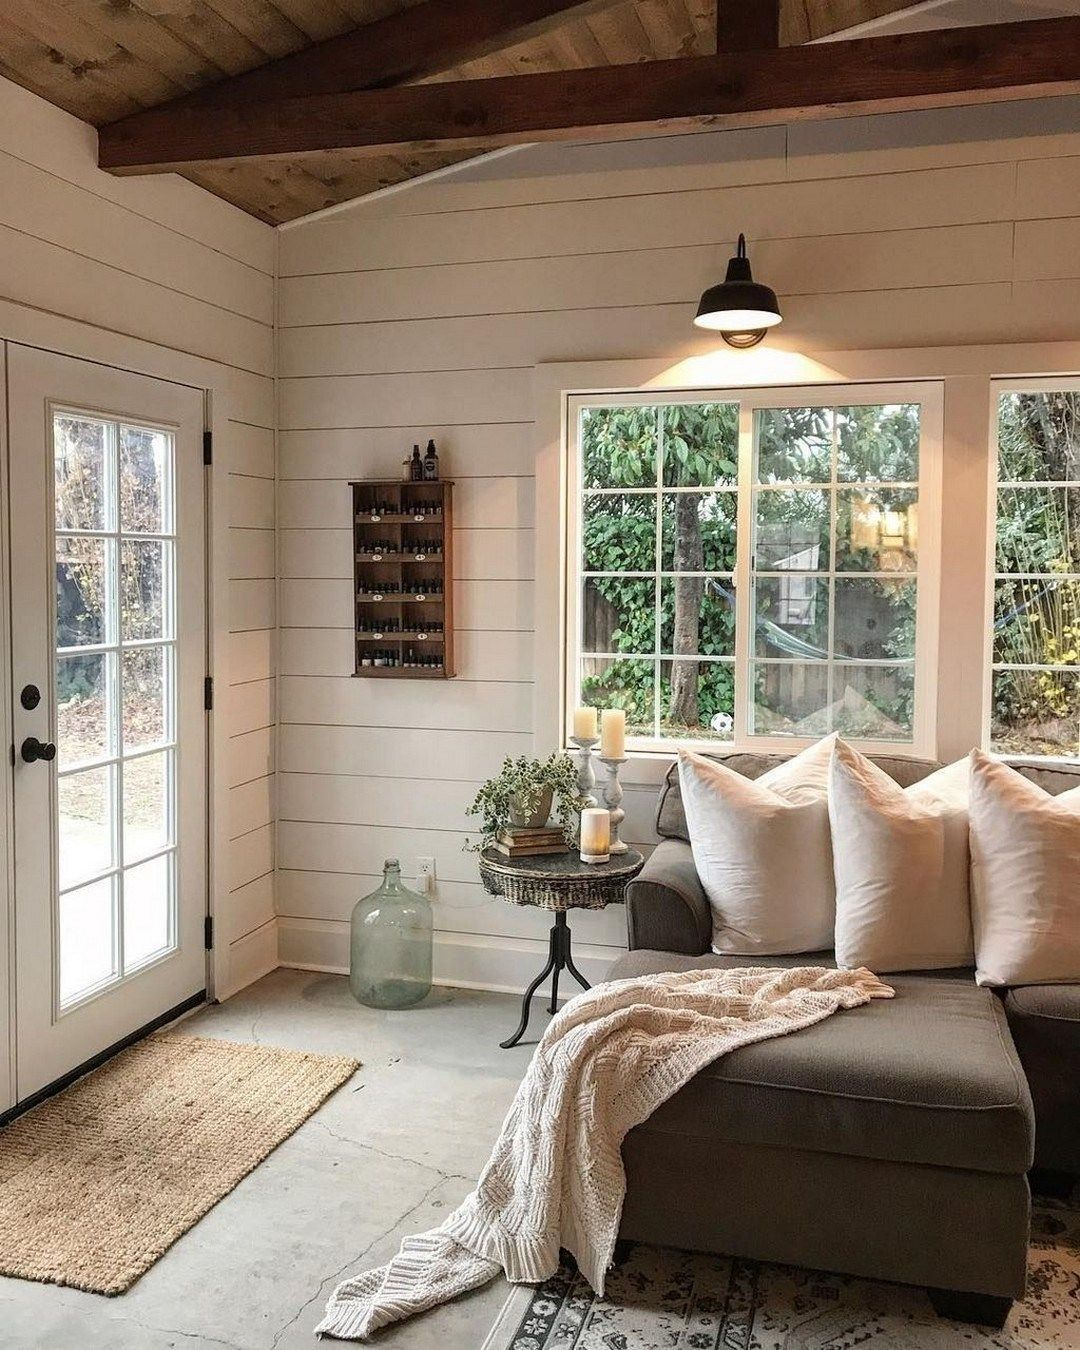 Inspiring Rustic Bedroom Ideas To Decorate With Style: Cozy Modern Farmhouse Sunroom Design Ideas (6